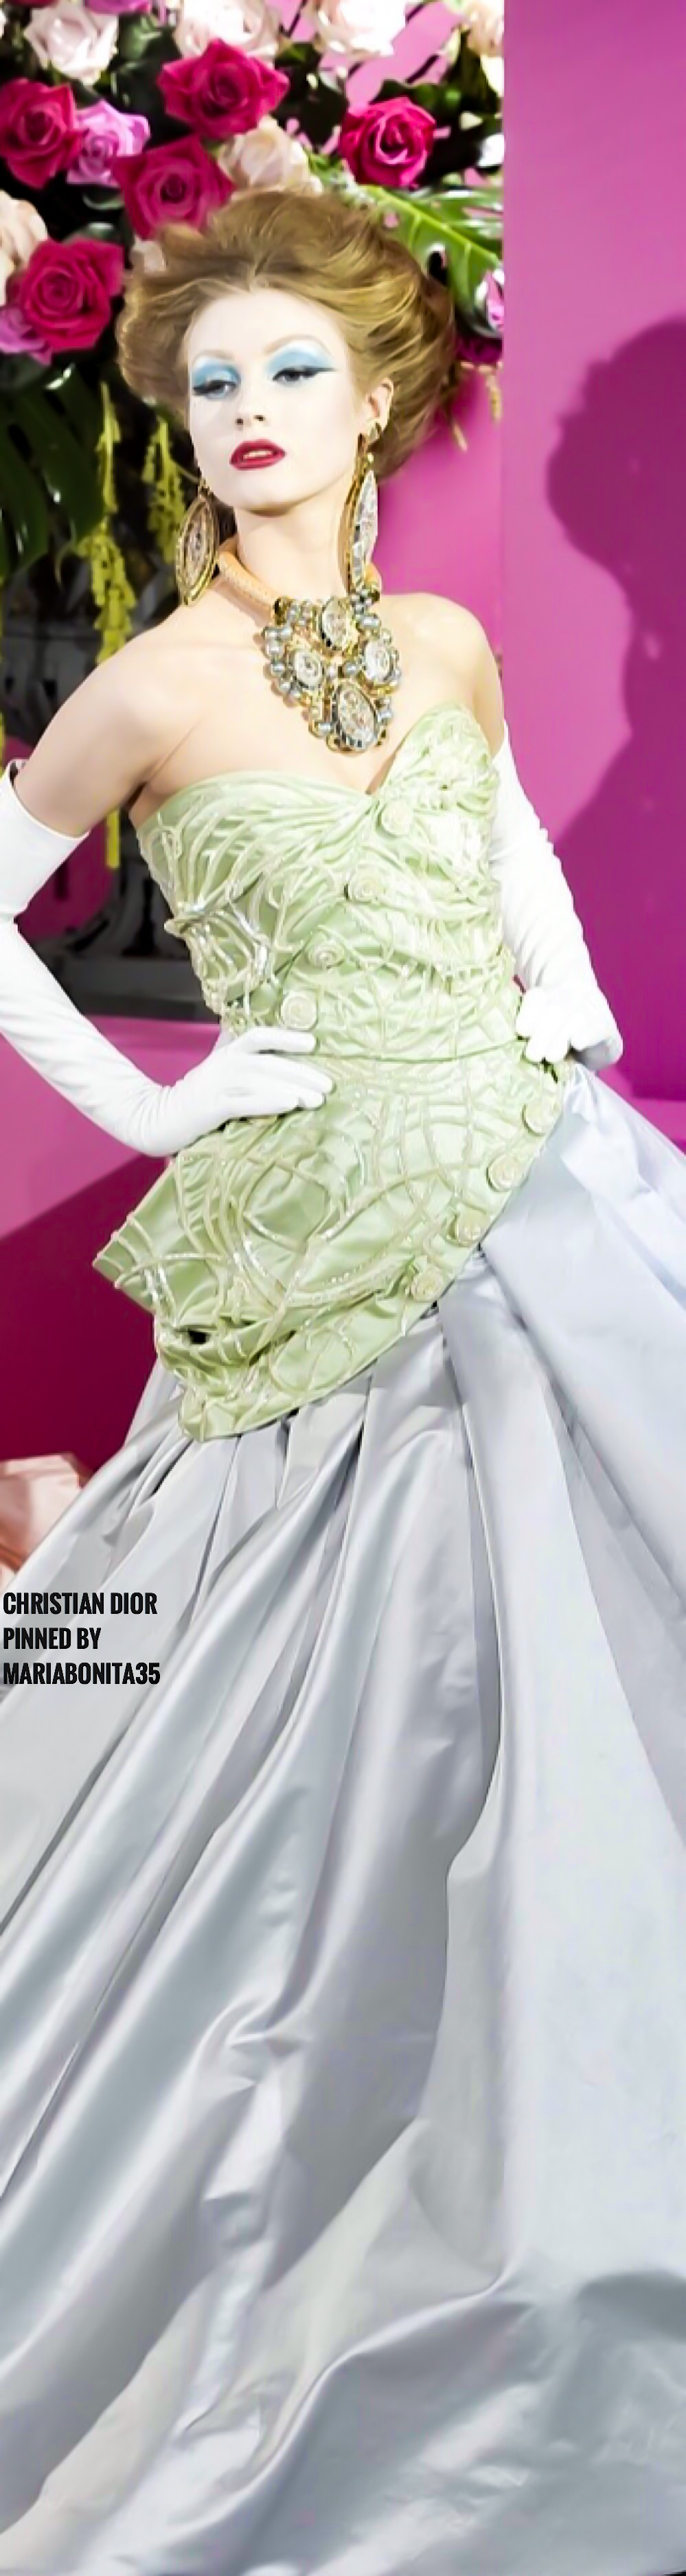 Christian Dior Spring-2010 Haute Couture